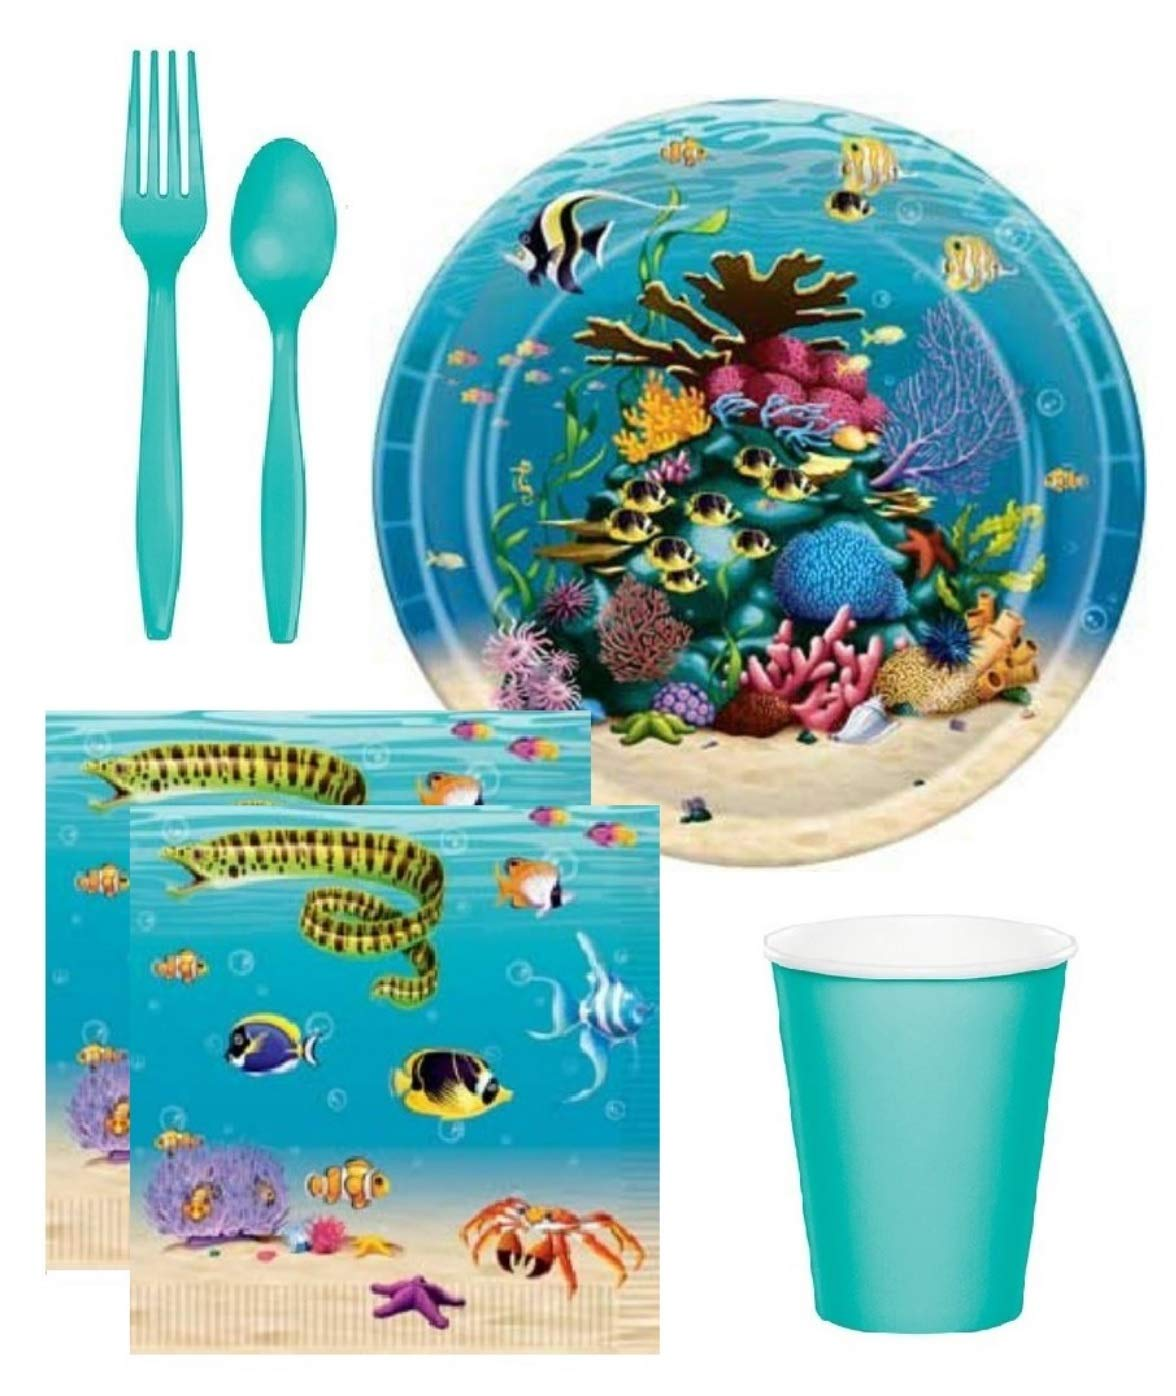 Under The Sea Ocean Theme Birthday Party Baby Shower Supplies for 16 Guests Plates Napkins Cups and Plasticware by FAKKOS